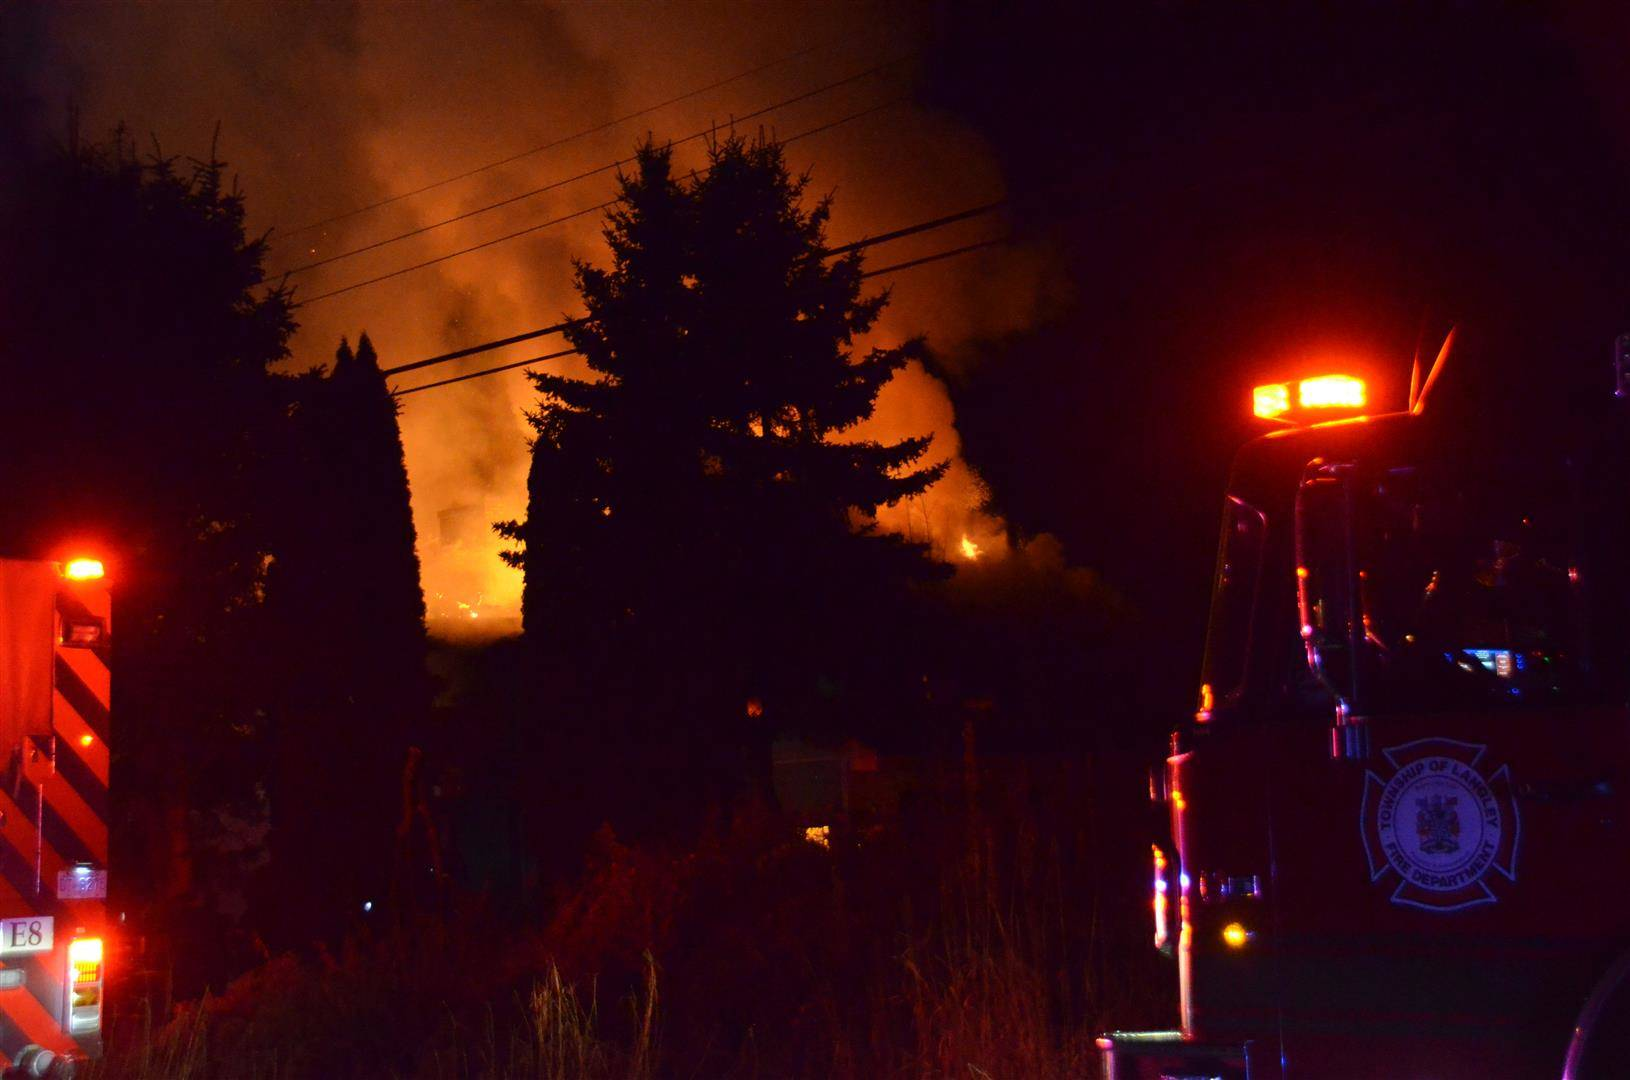 Township fire crews responded to a house fire early Thursday morning where at least one person was taken away on a stretcher. (Curtis Kreklau/South Fraser News Services)